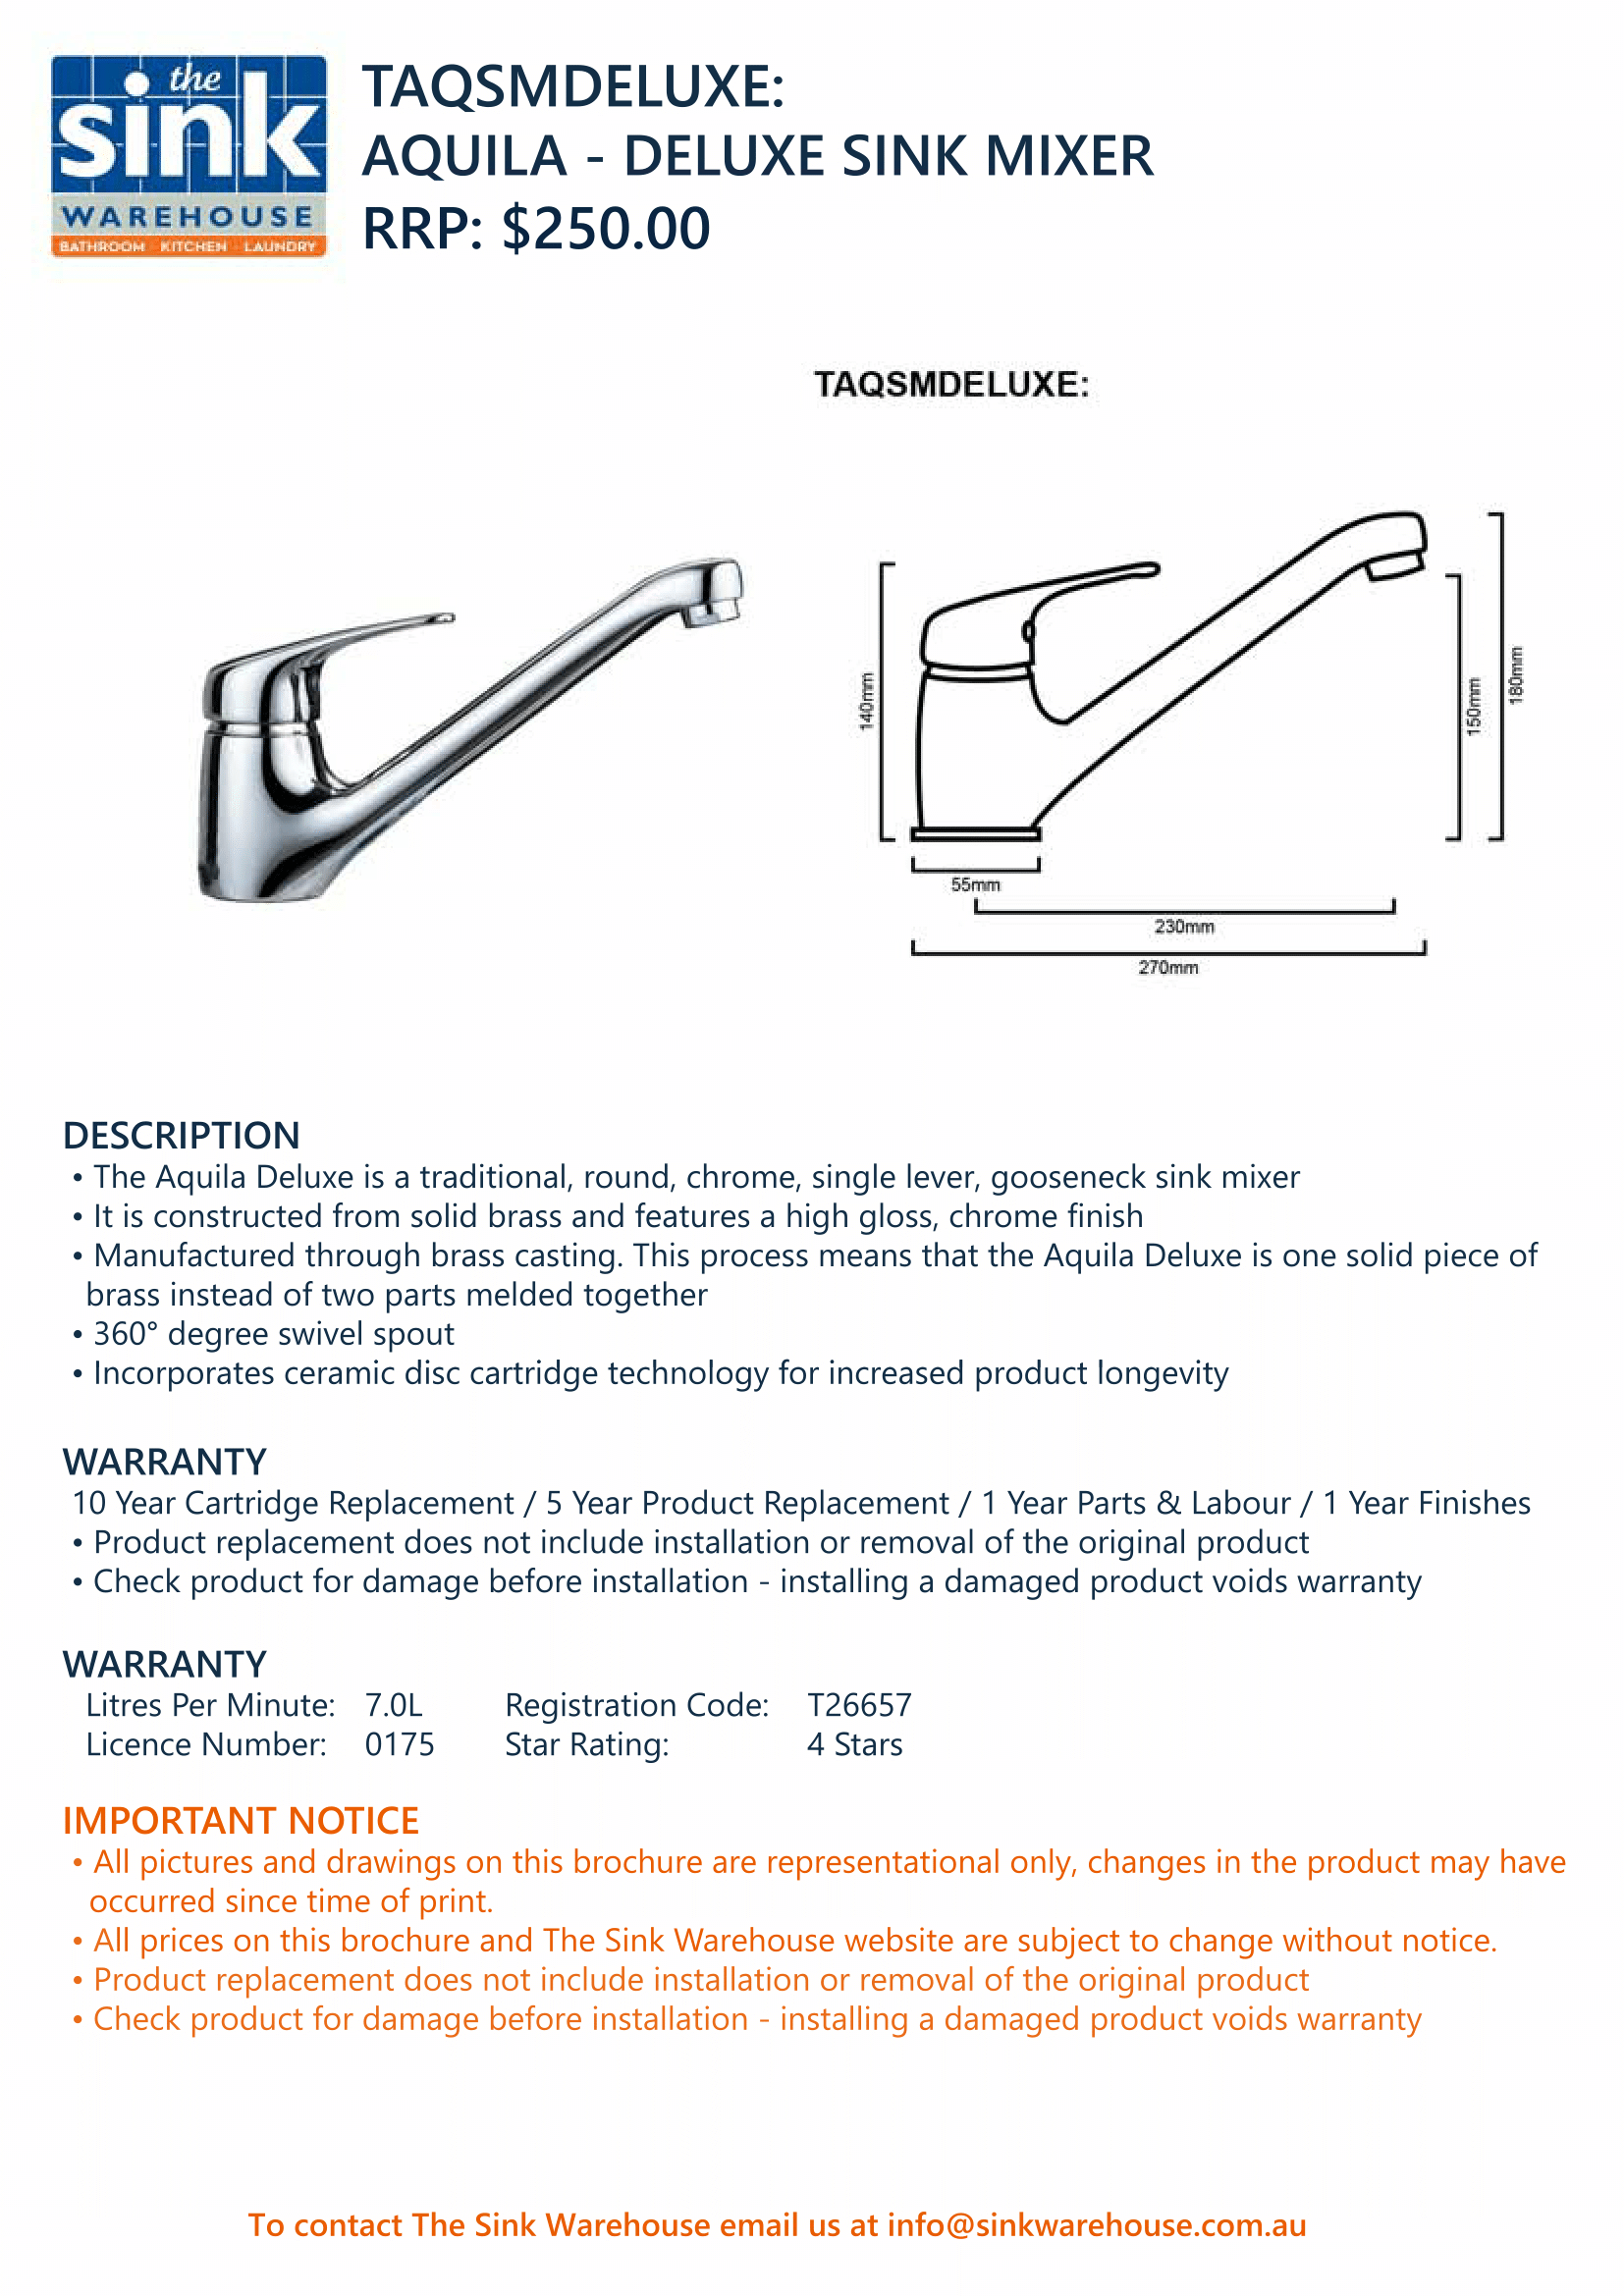 taqsdeluxe-product-spec-sheet-1.png